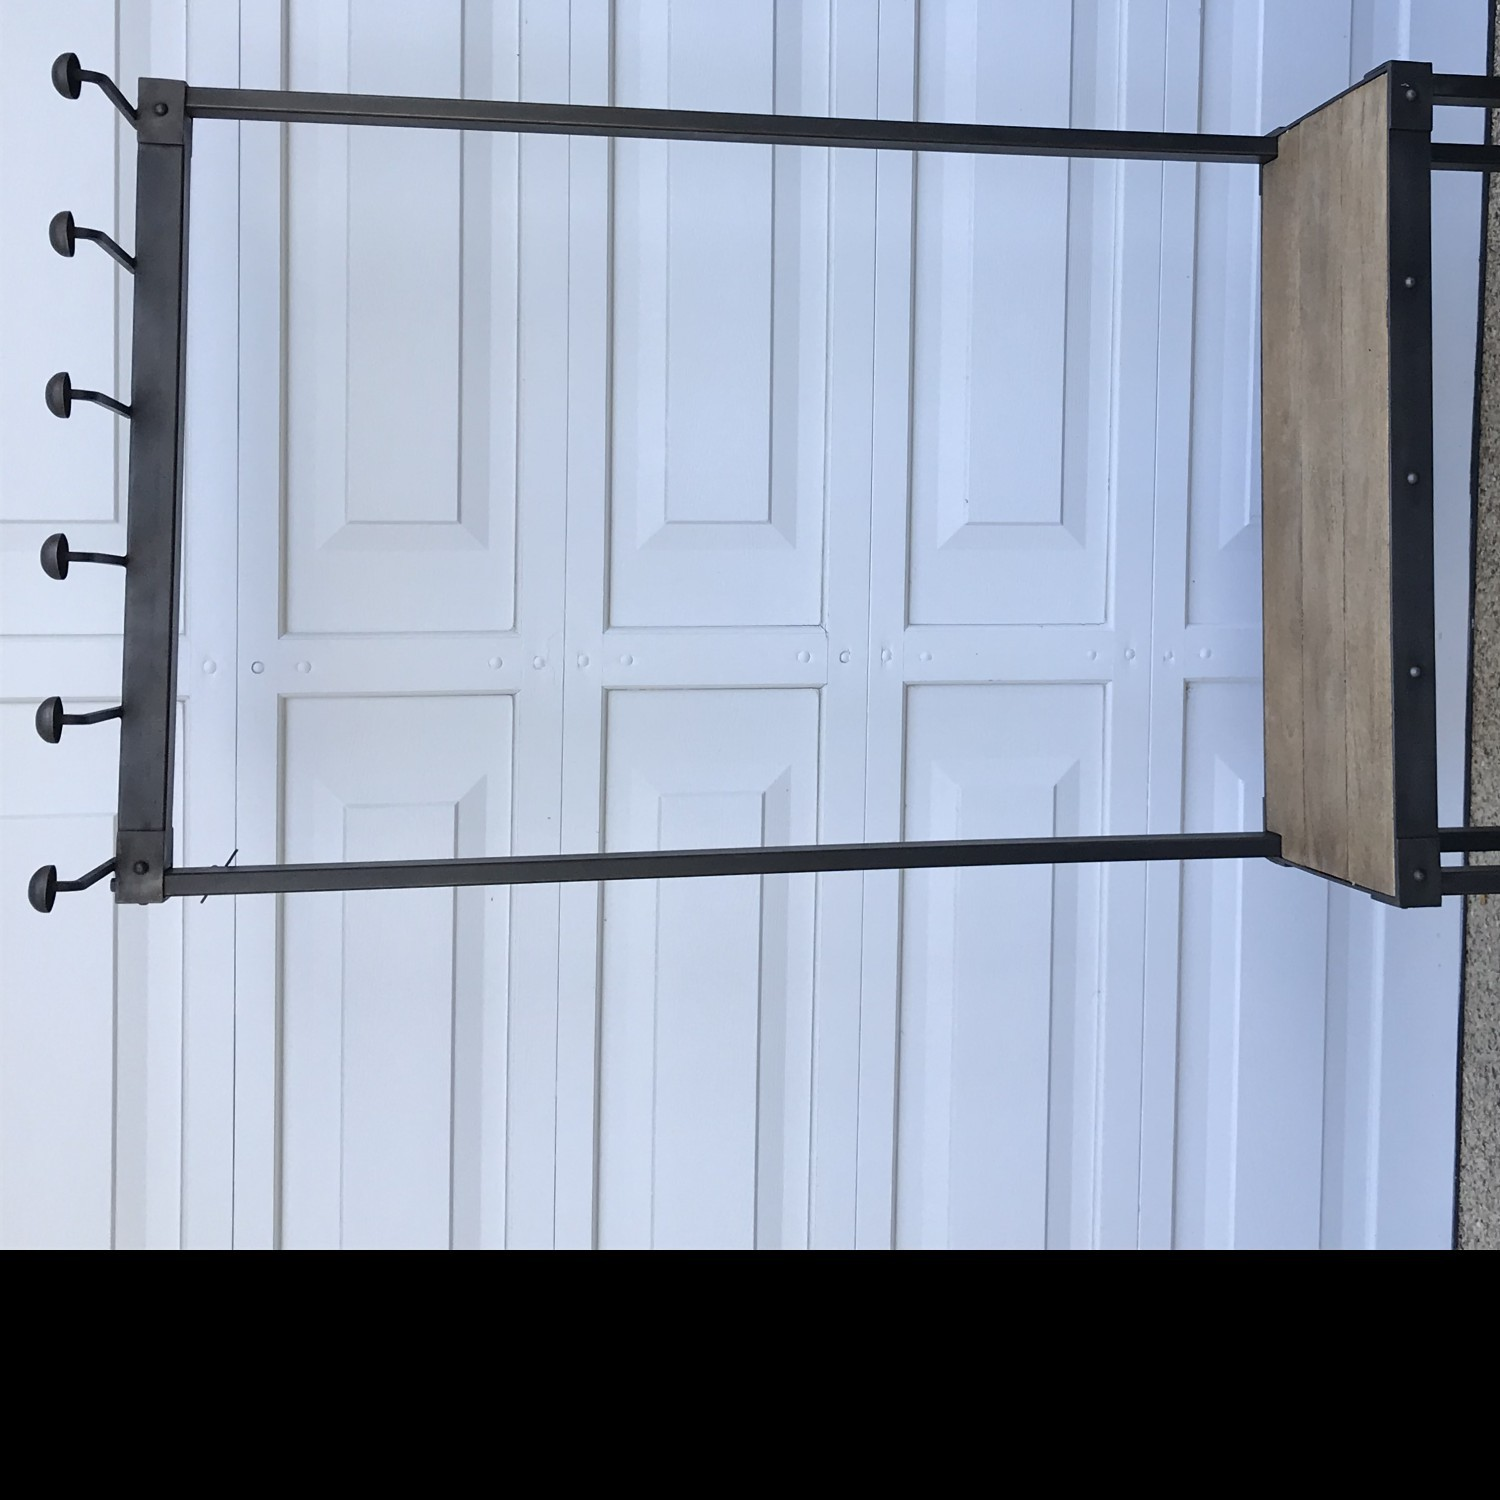 POTTERY BARN ENTRY BENCH WITH CLOTHES HOOKS